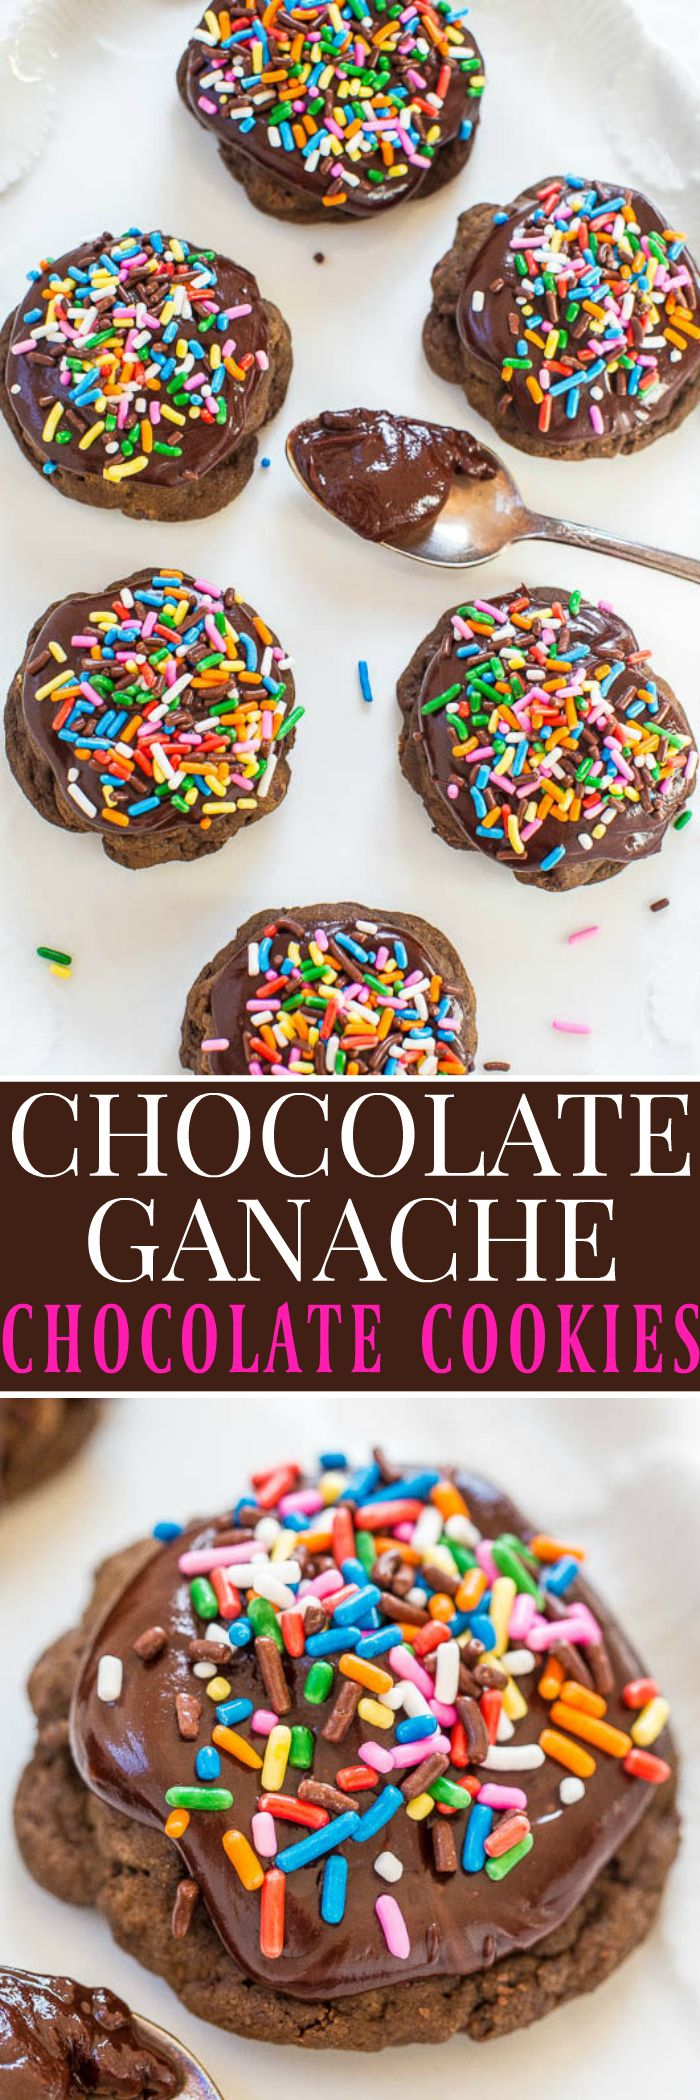 Chocolate Ganache Chocolate Cookies | Averie Cooks | A chocaholic's DREAM: Soft chocolate cookies with chocolate chips, cocoa, and topped with fudgy chocolate ganache!! Rich, decadent, and heavenly!!